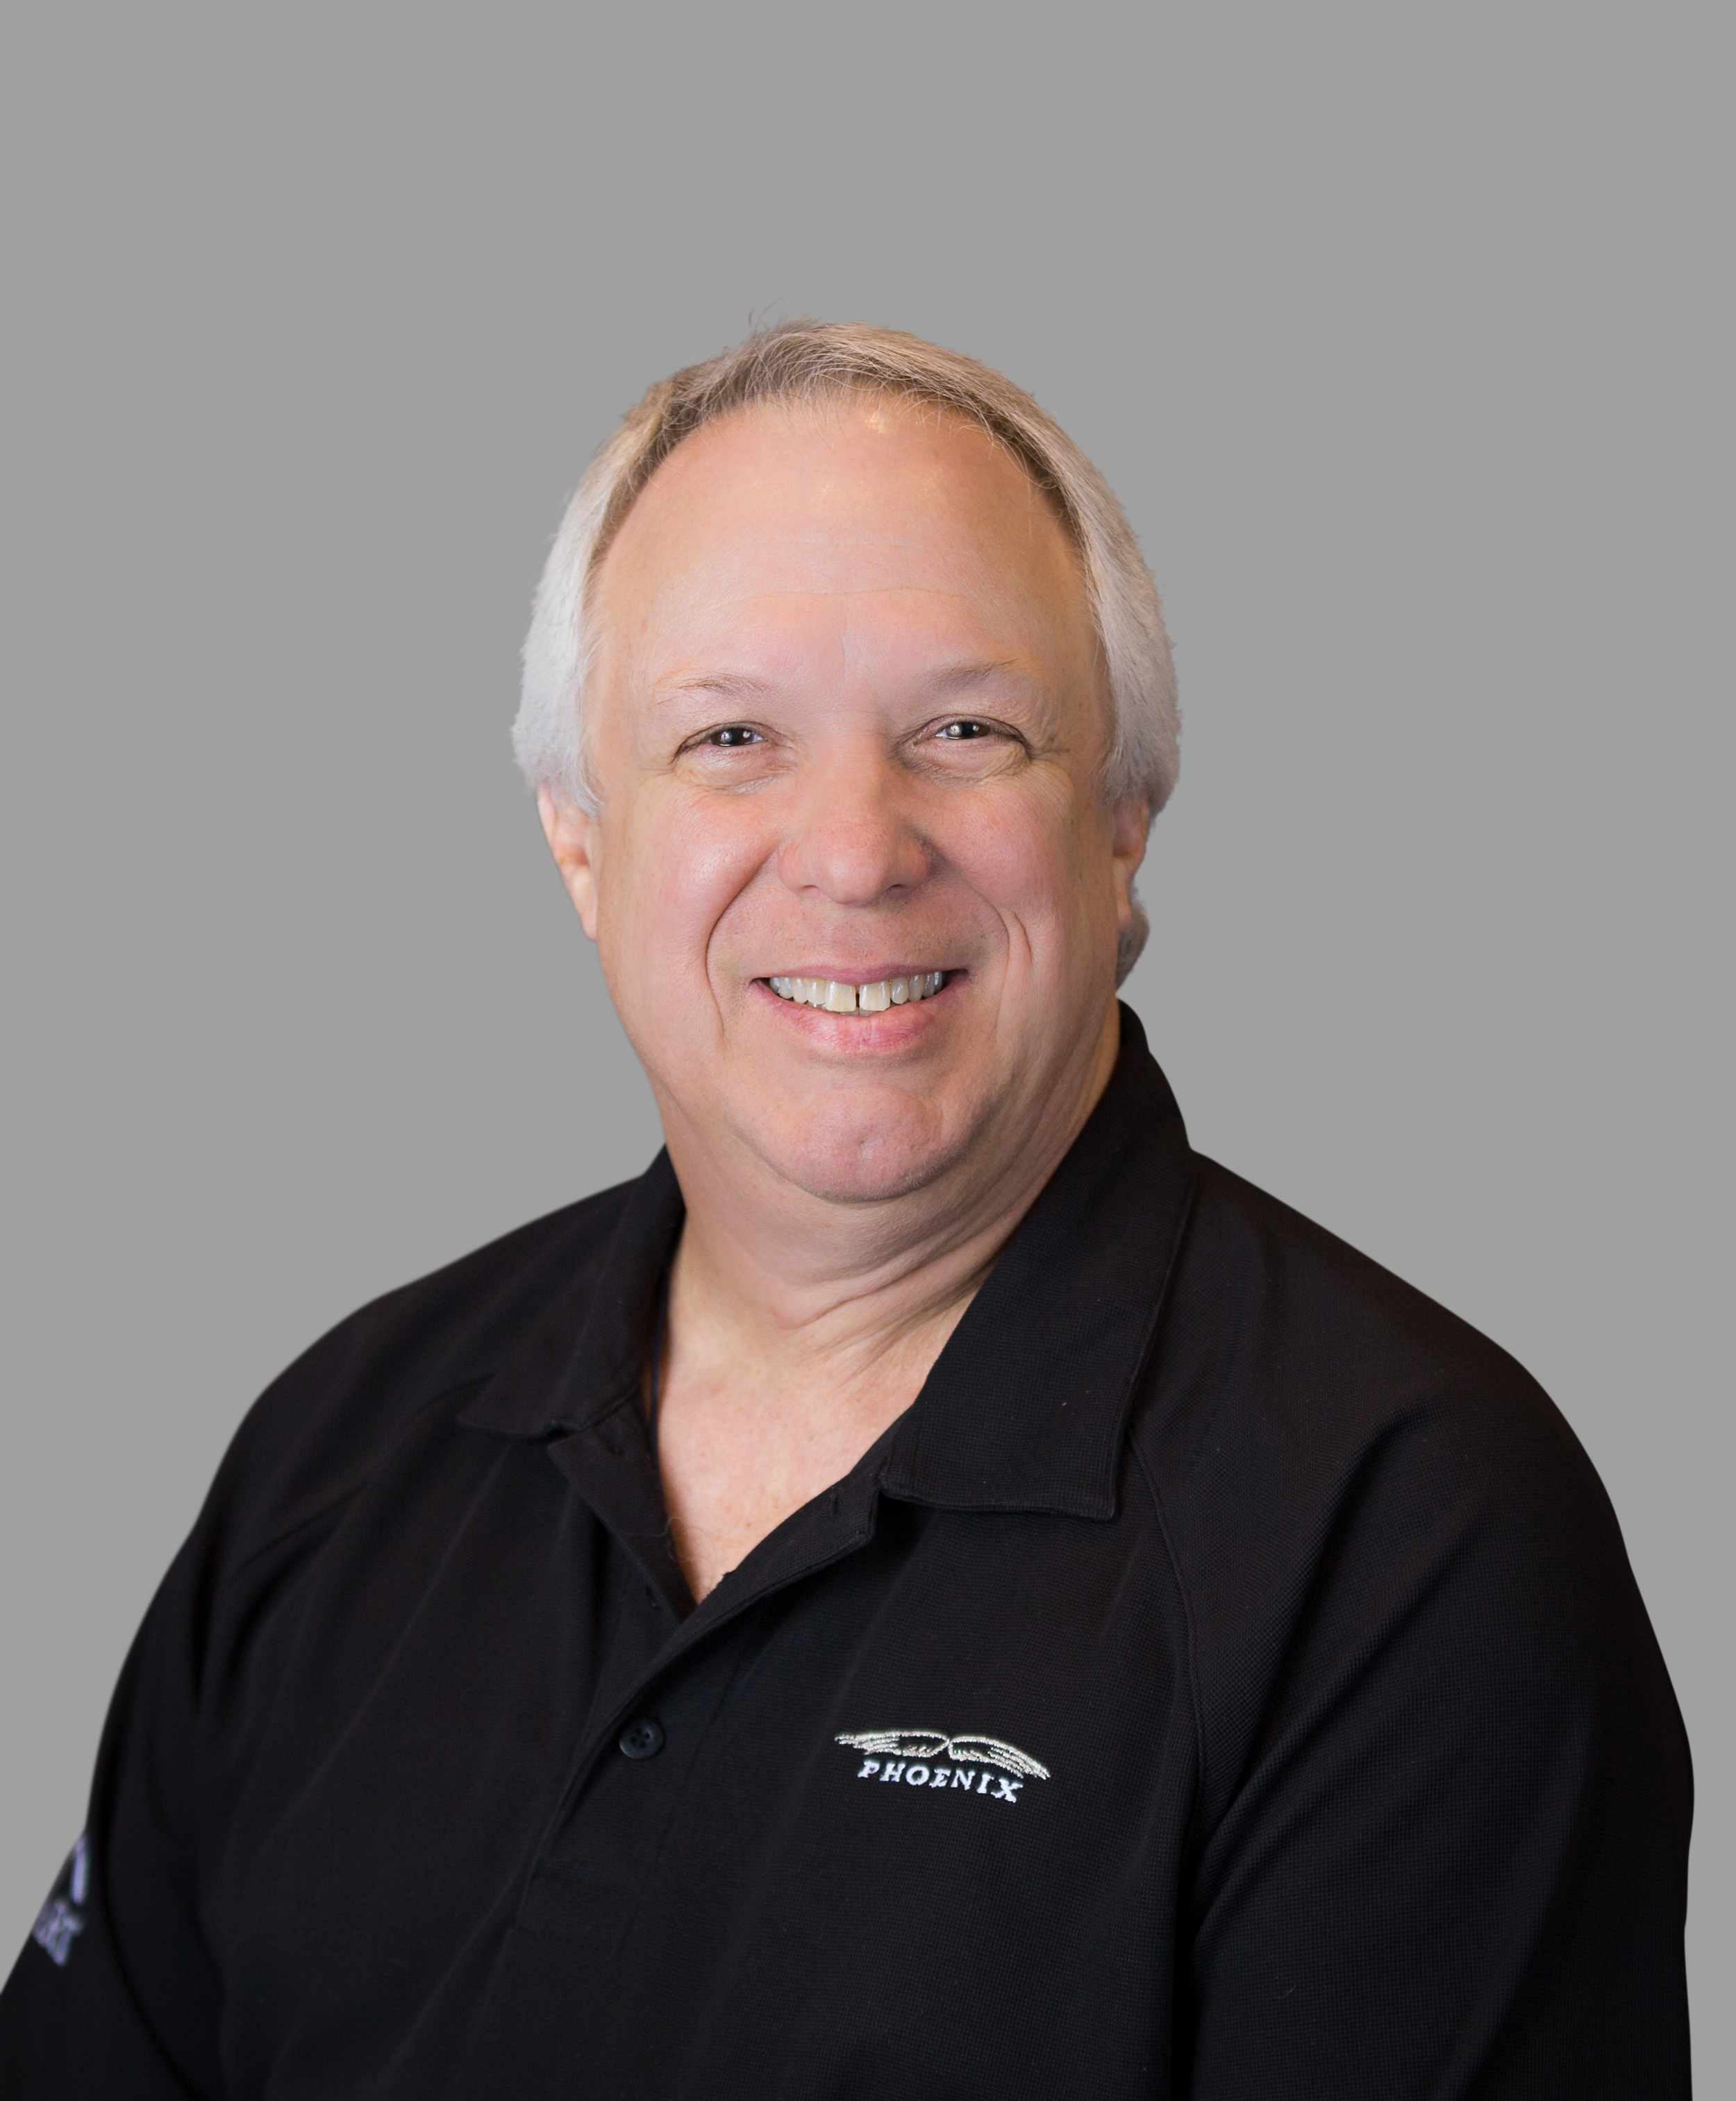 Kevin Chaney  - IT Manager